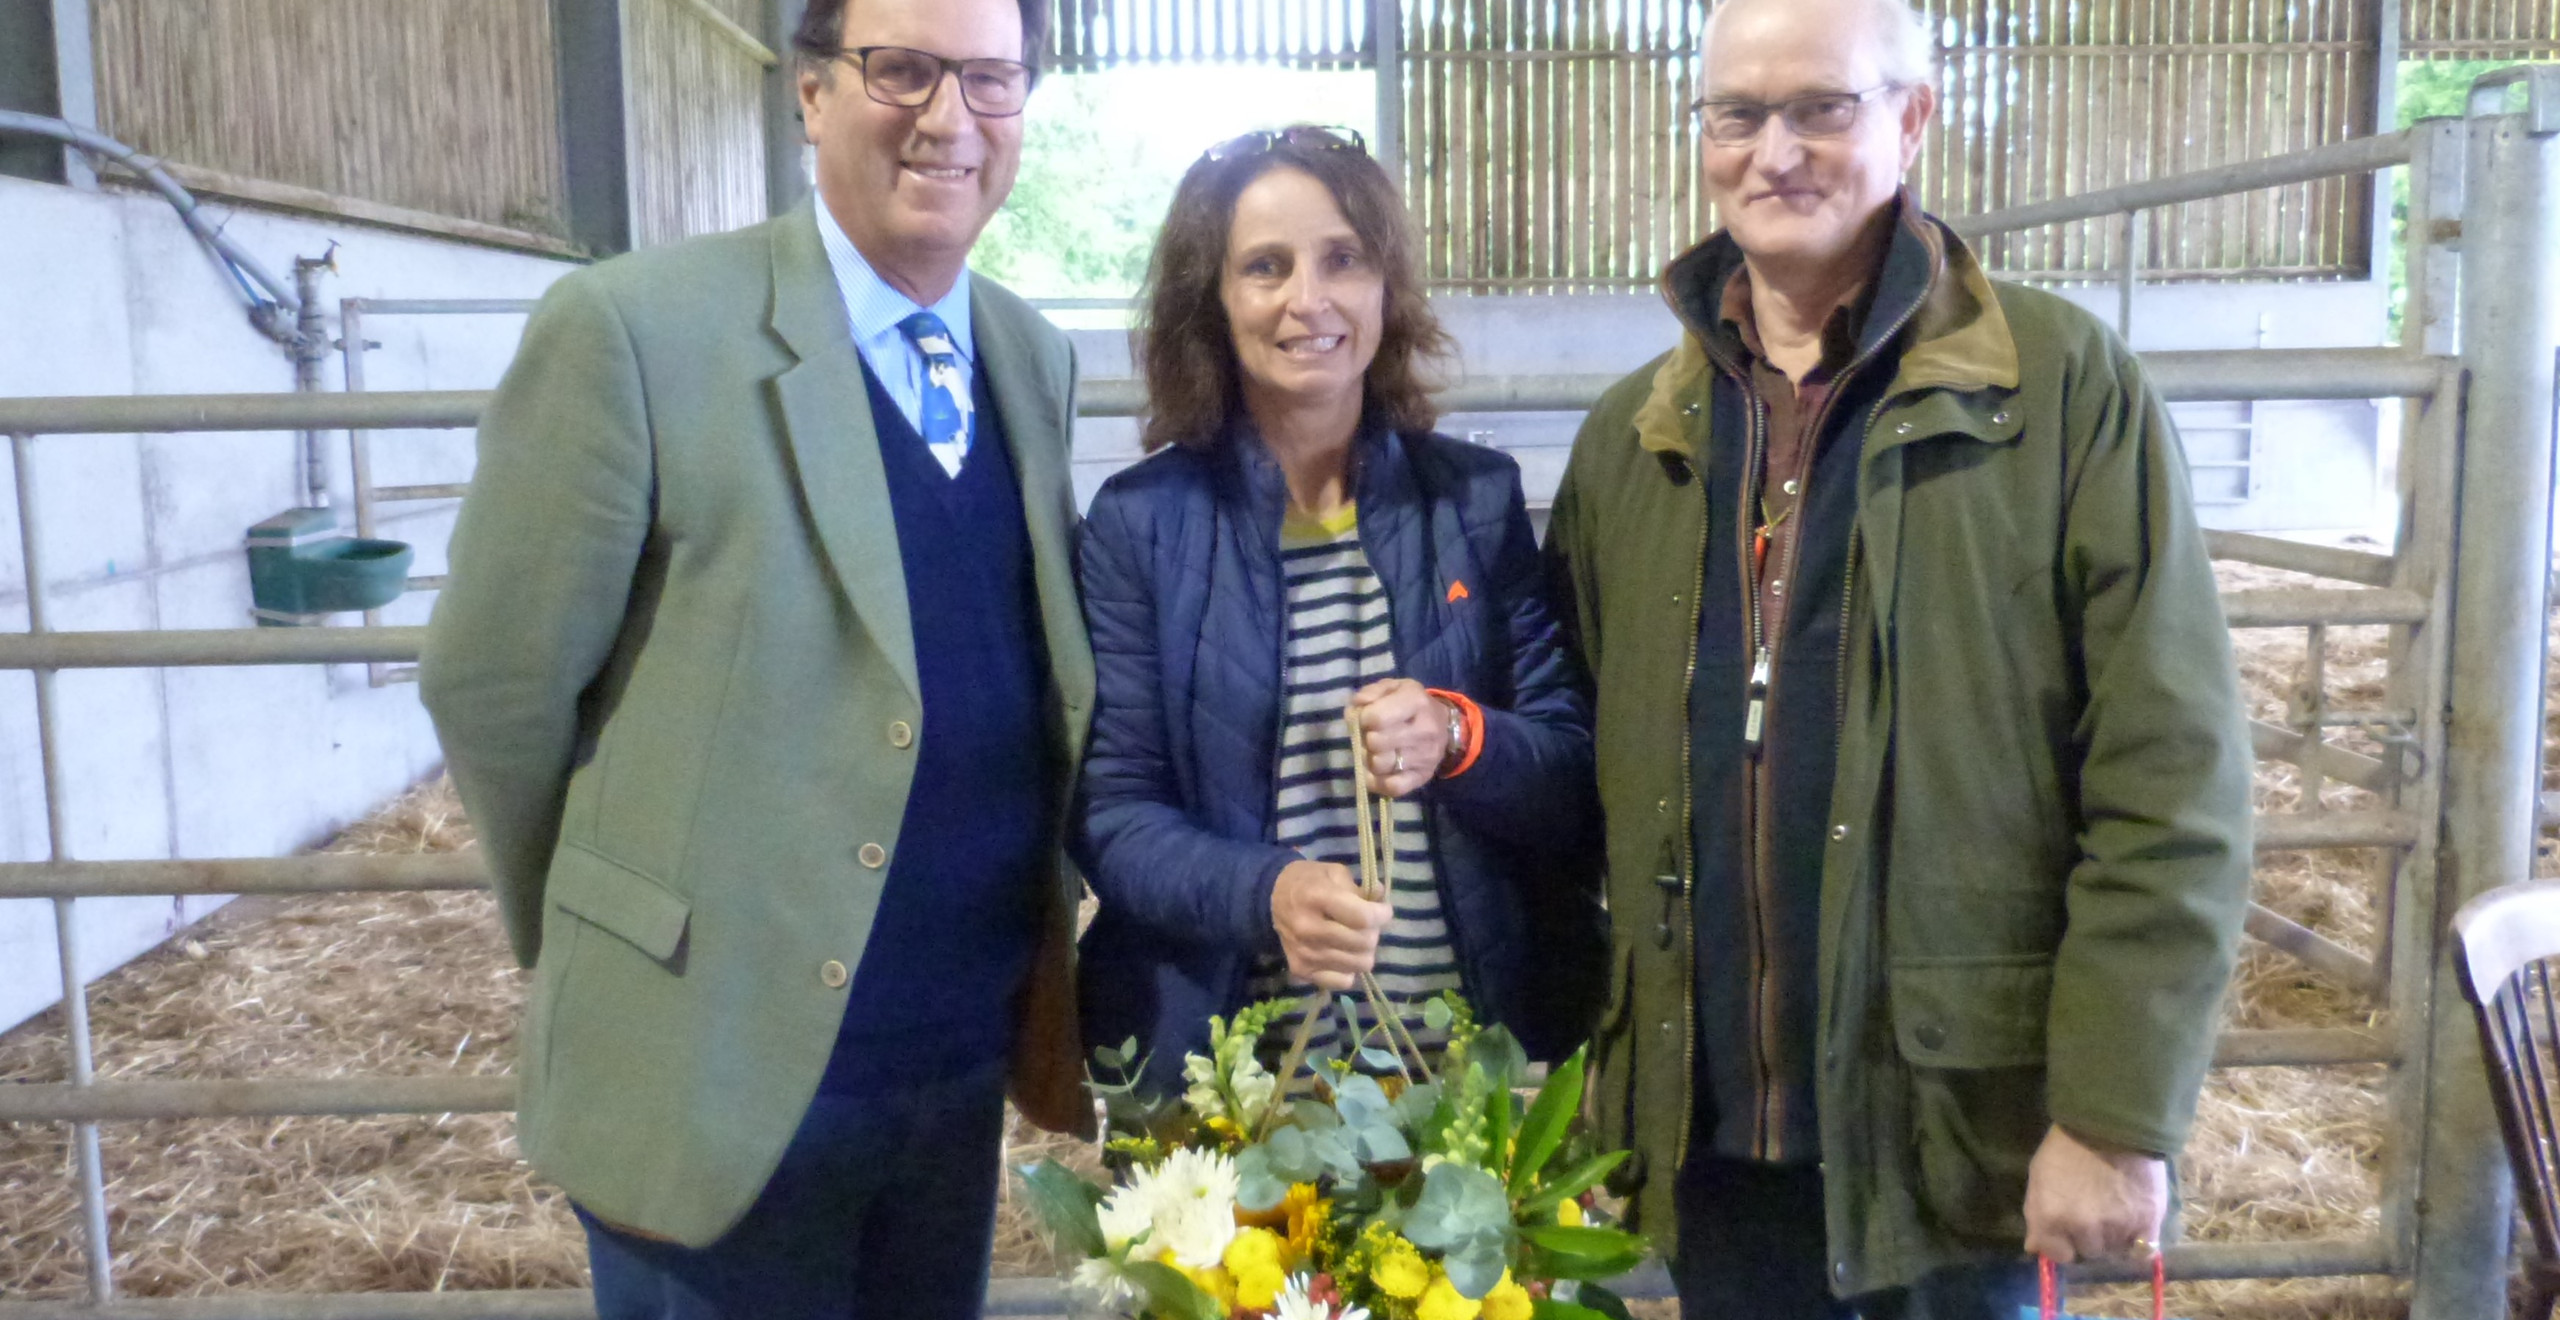 Henry Cator presents a token of thanks to hosts David and Stephie Trafford